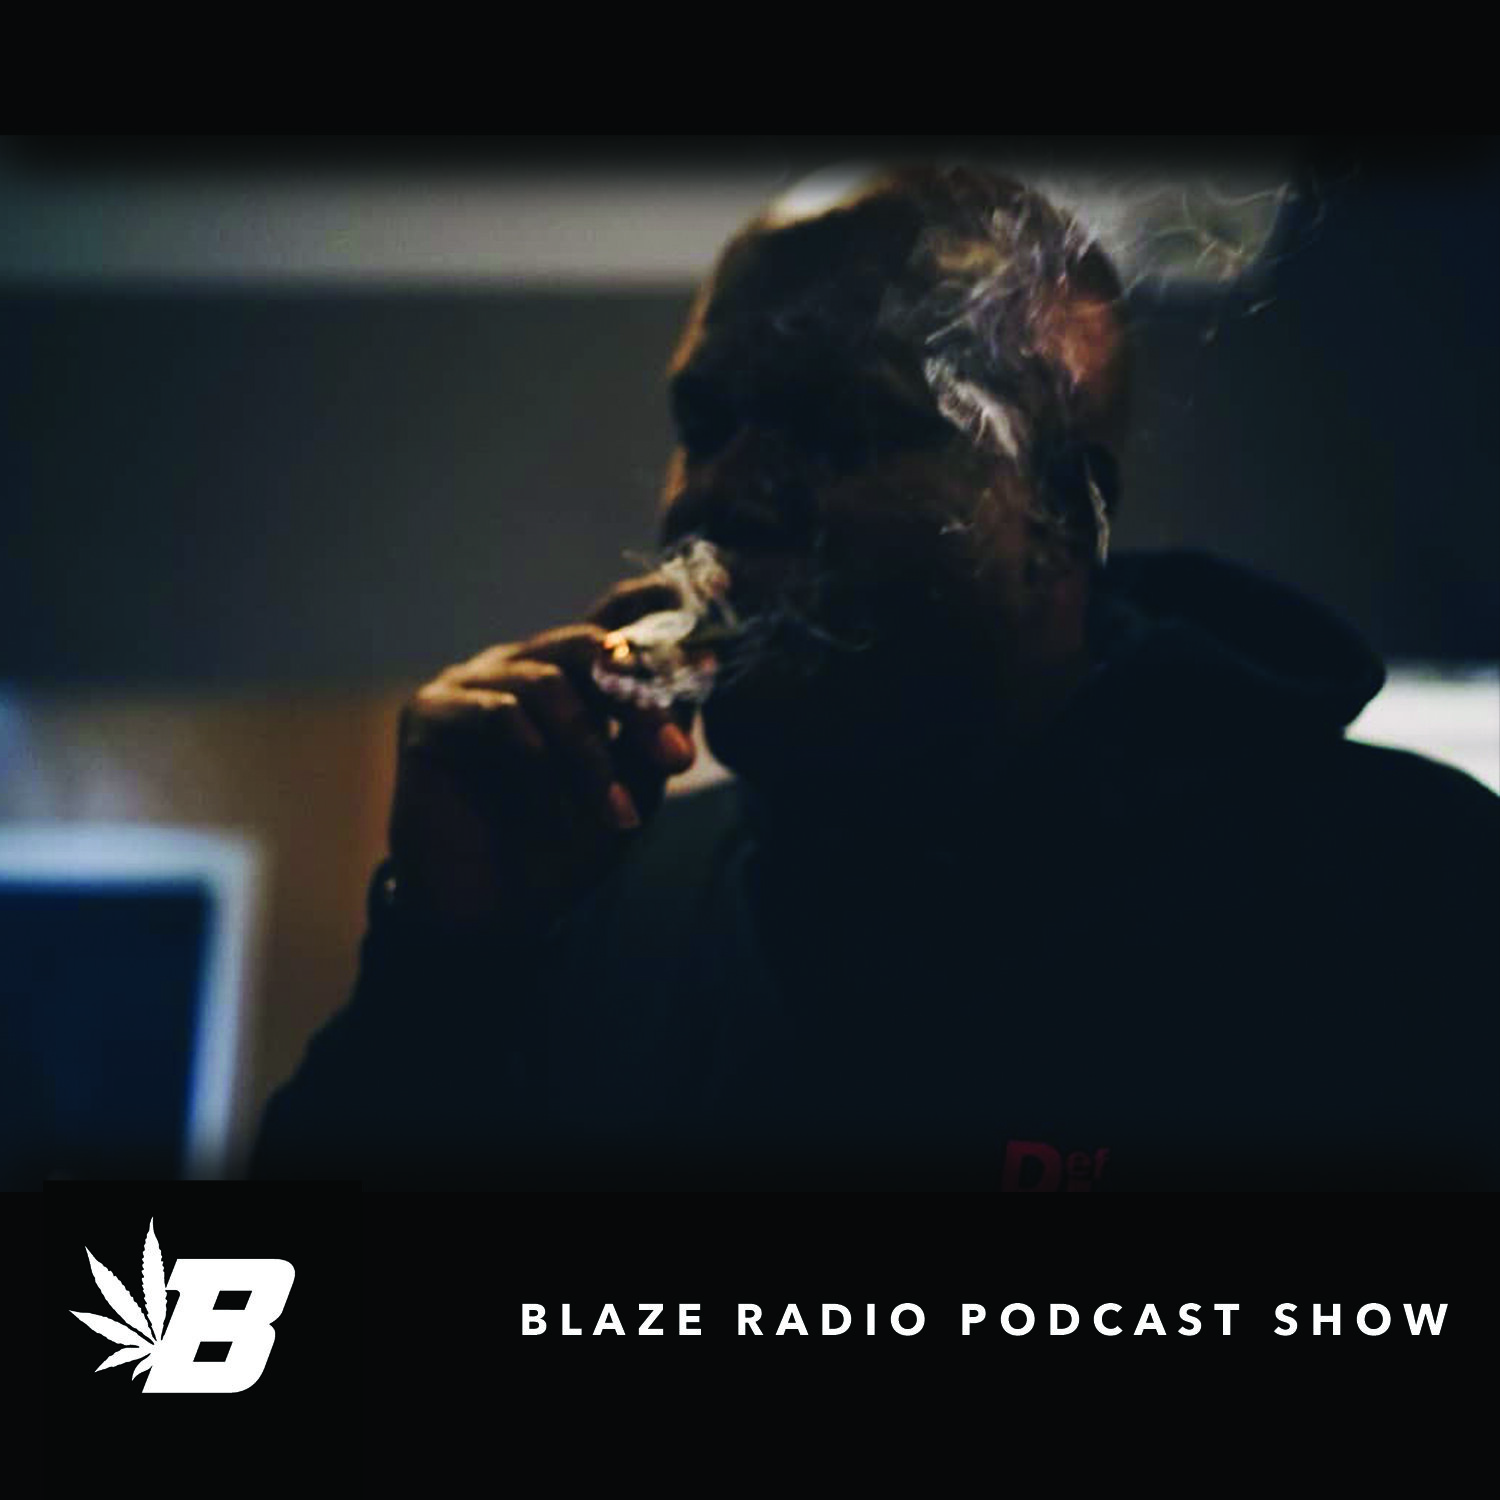 BLAZE RADIO PODCAST SHOW